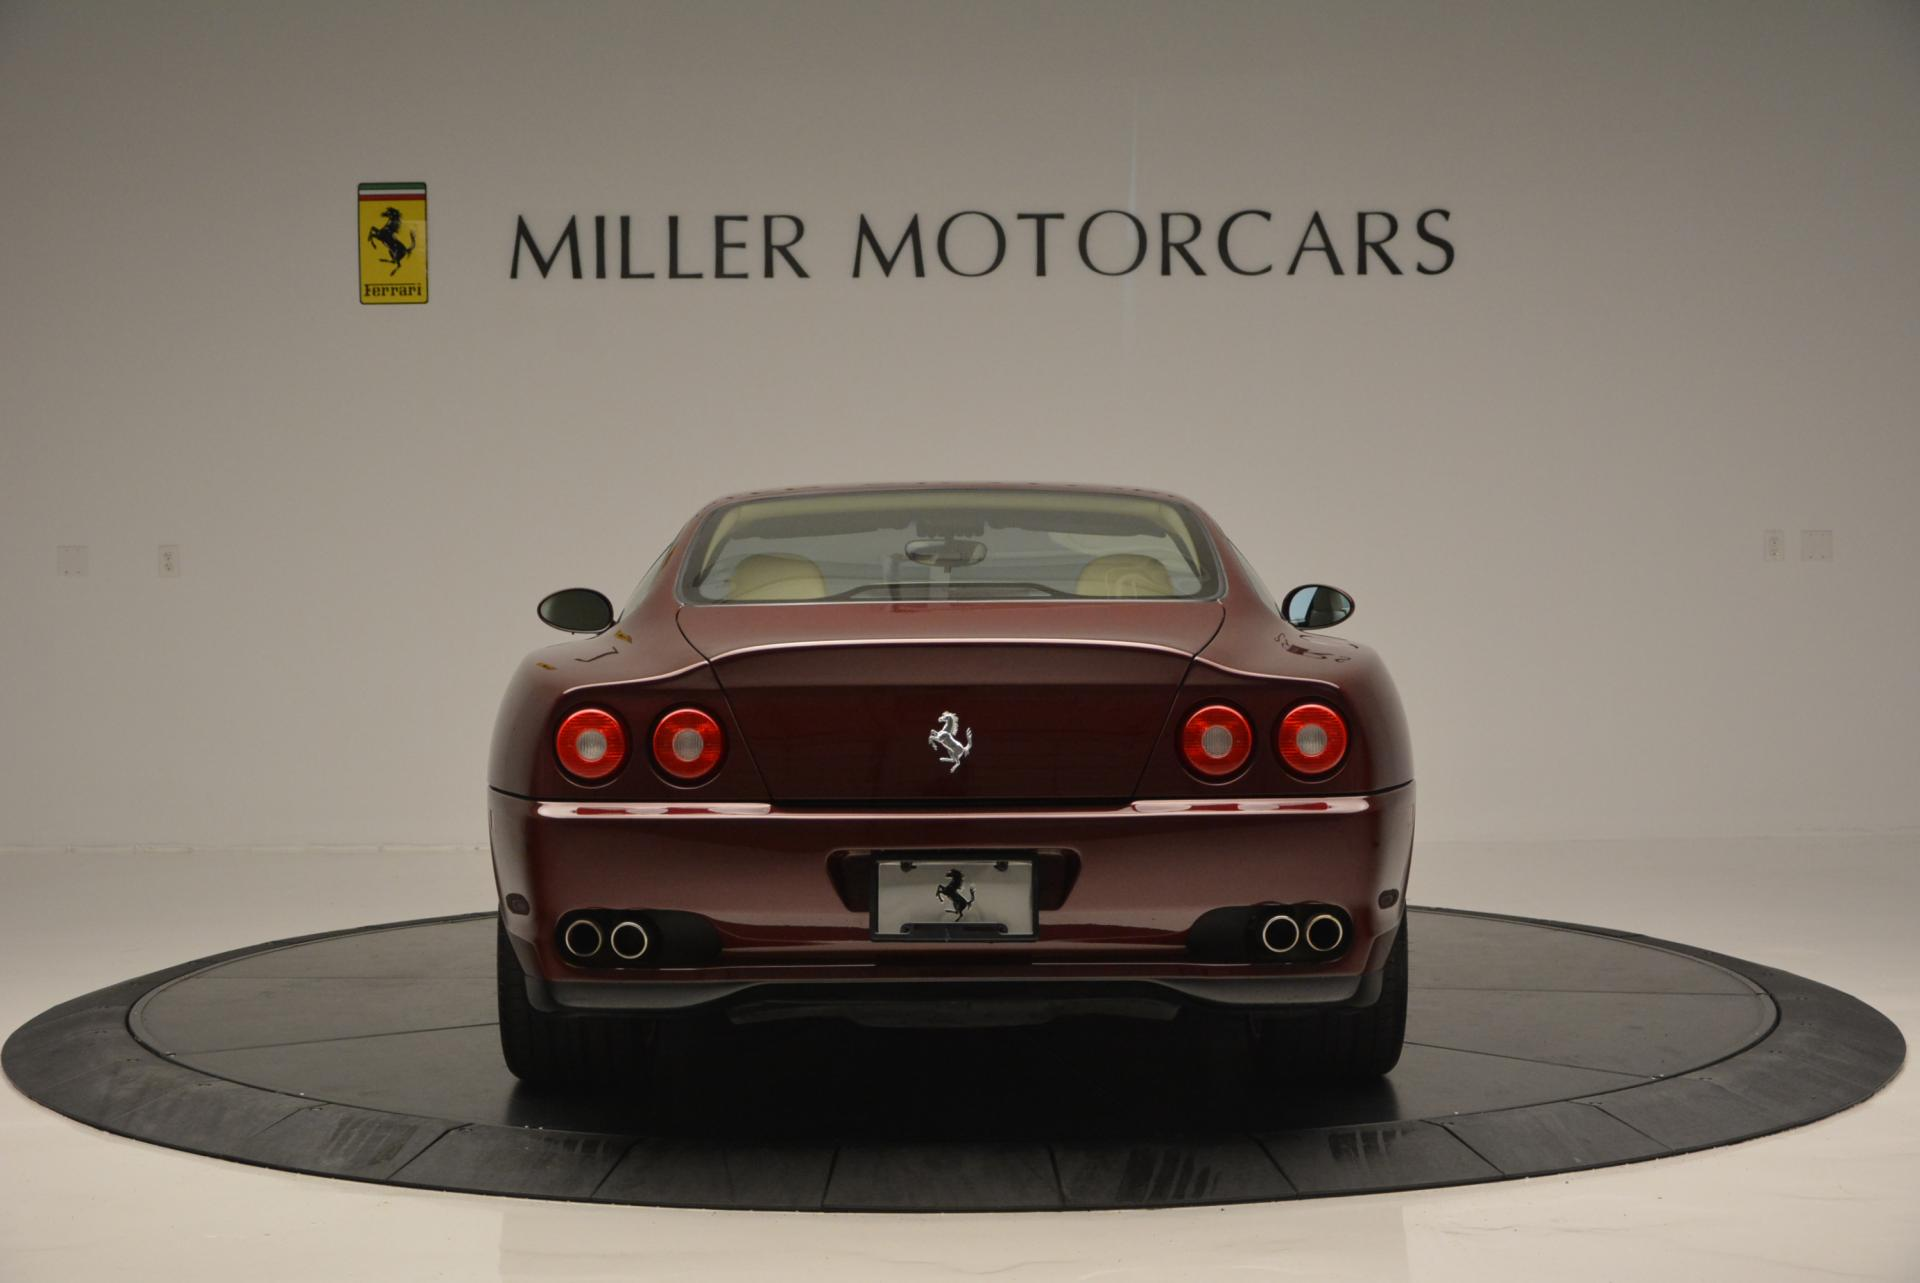 Used 2003 Ferrari 575M Maranello 6-Speed Manual For Sale In Greenwich, CT 143_p6